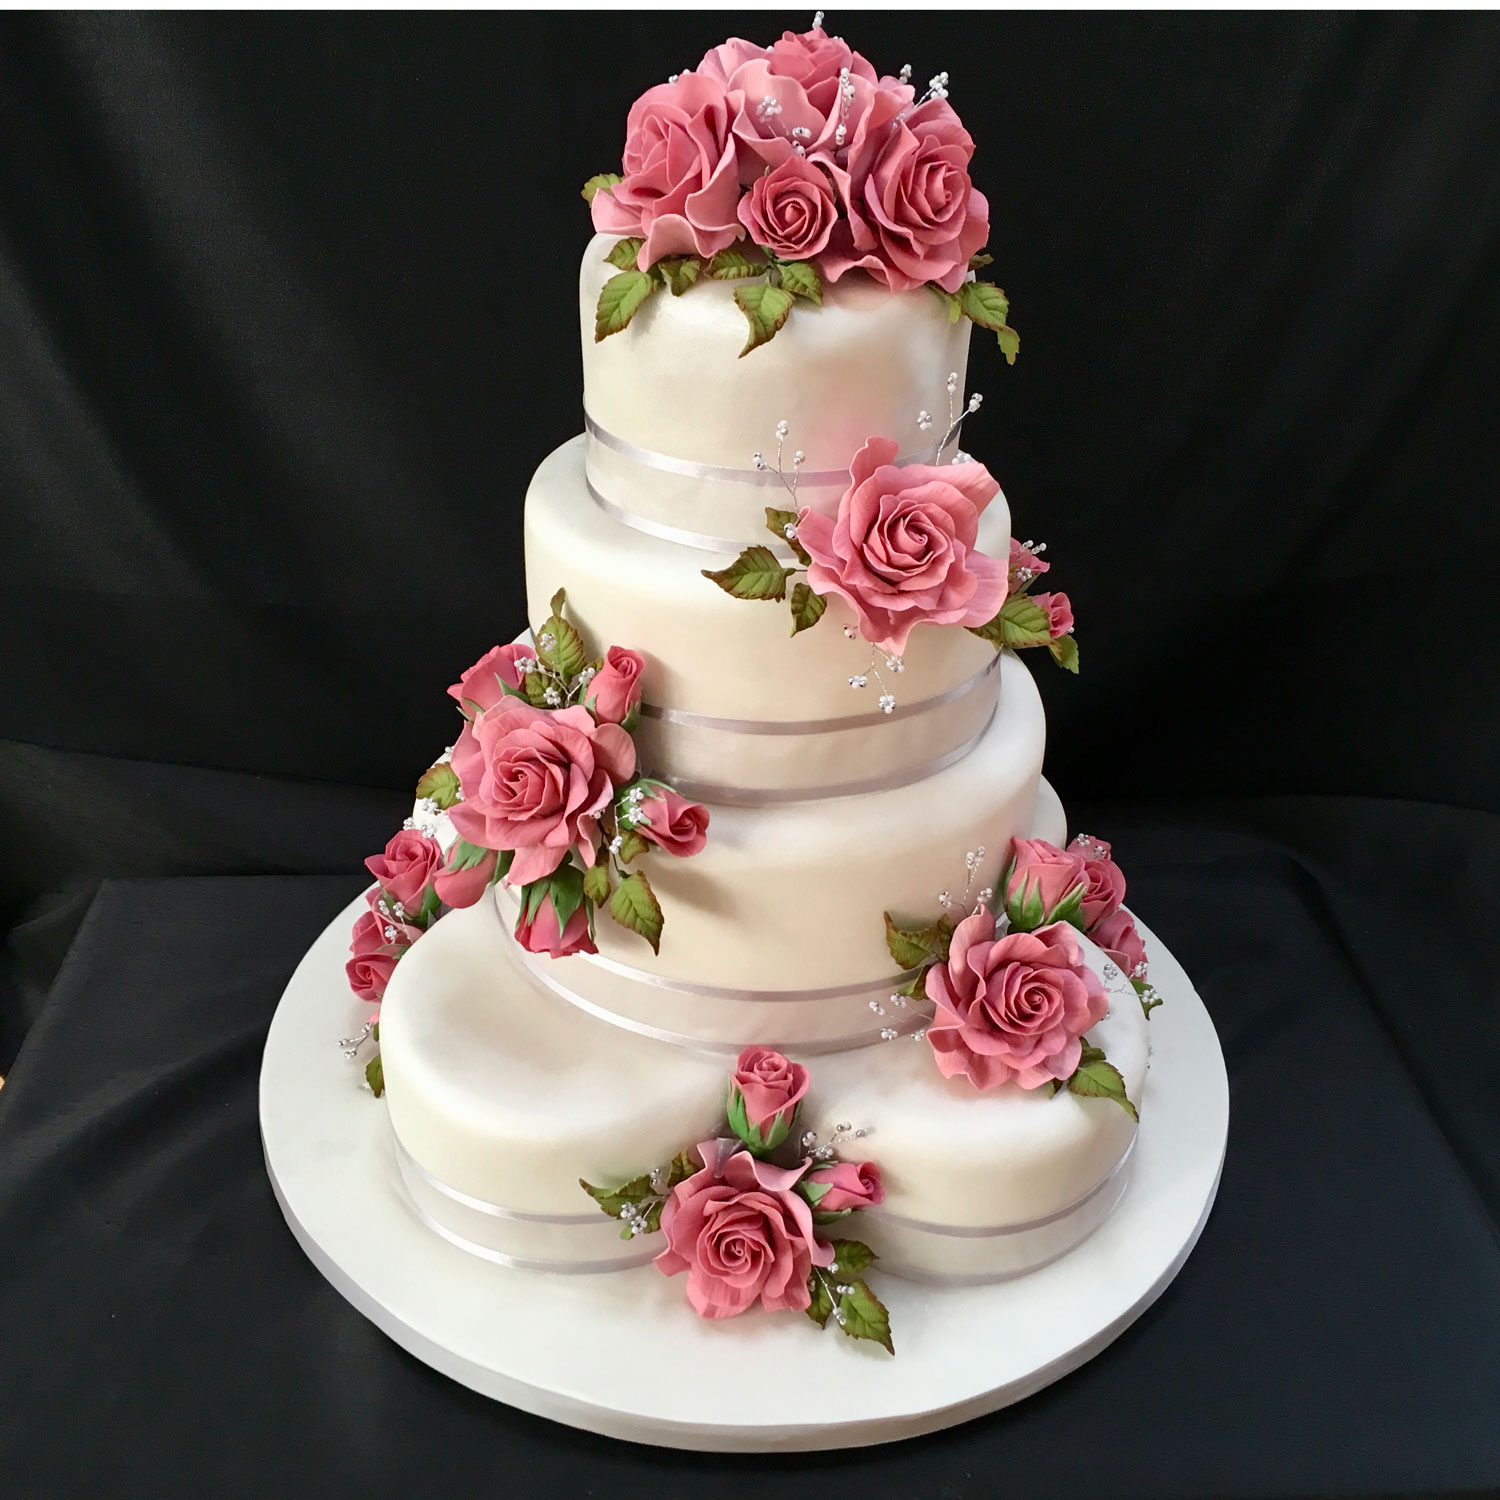 Fondant Flowers For Wedding Cakes: Floral Wedding Cakes Floral Wedding Cakes And Cakes With